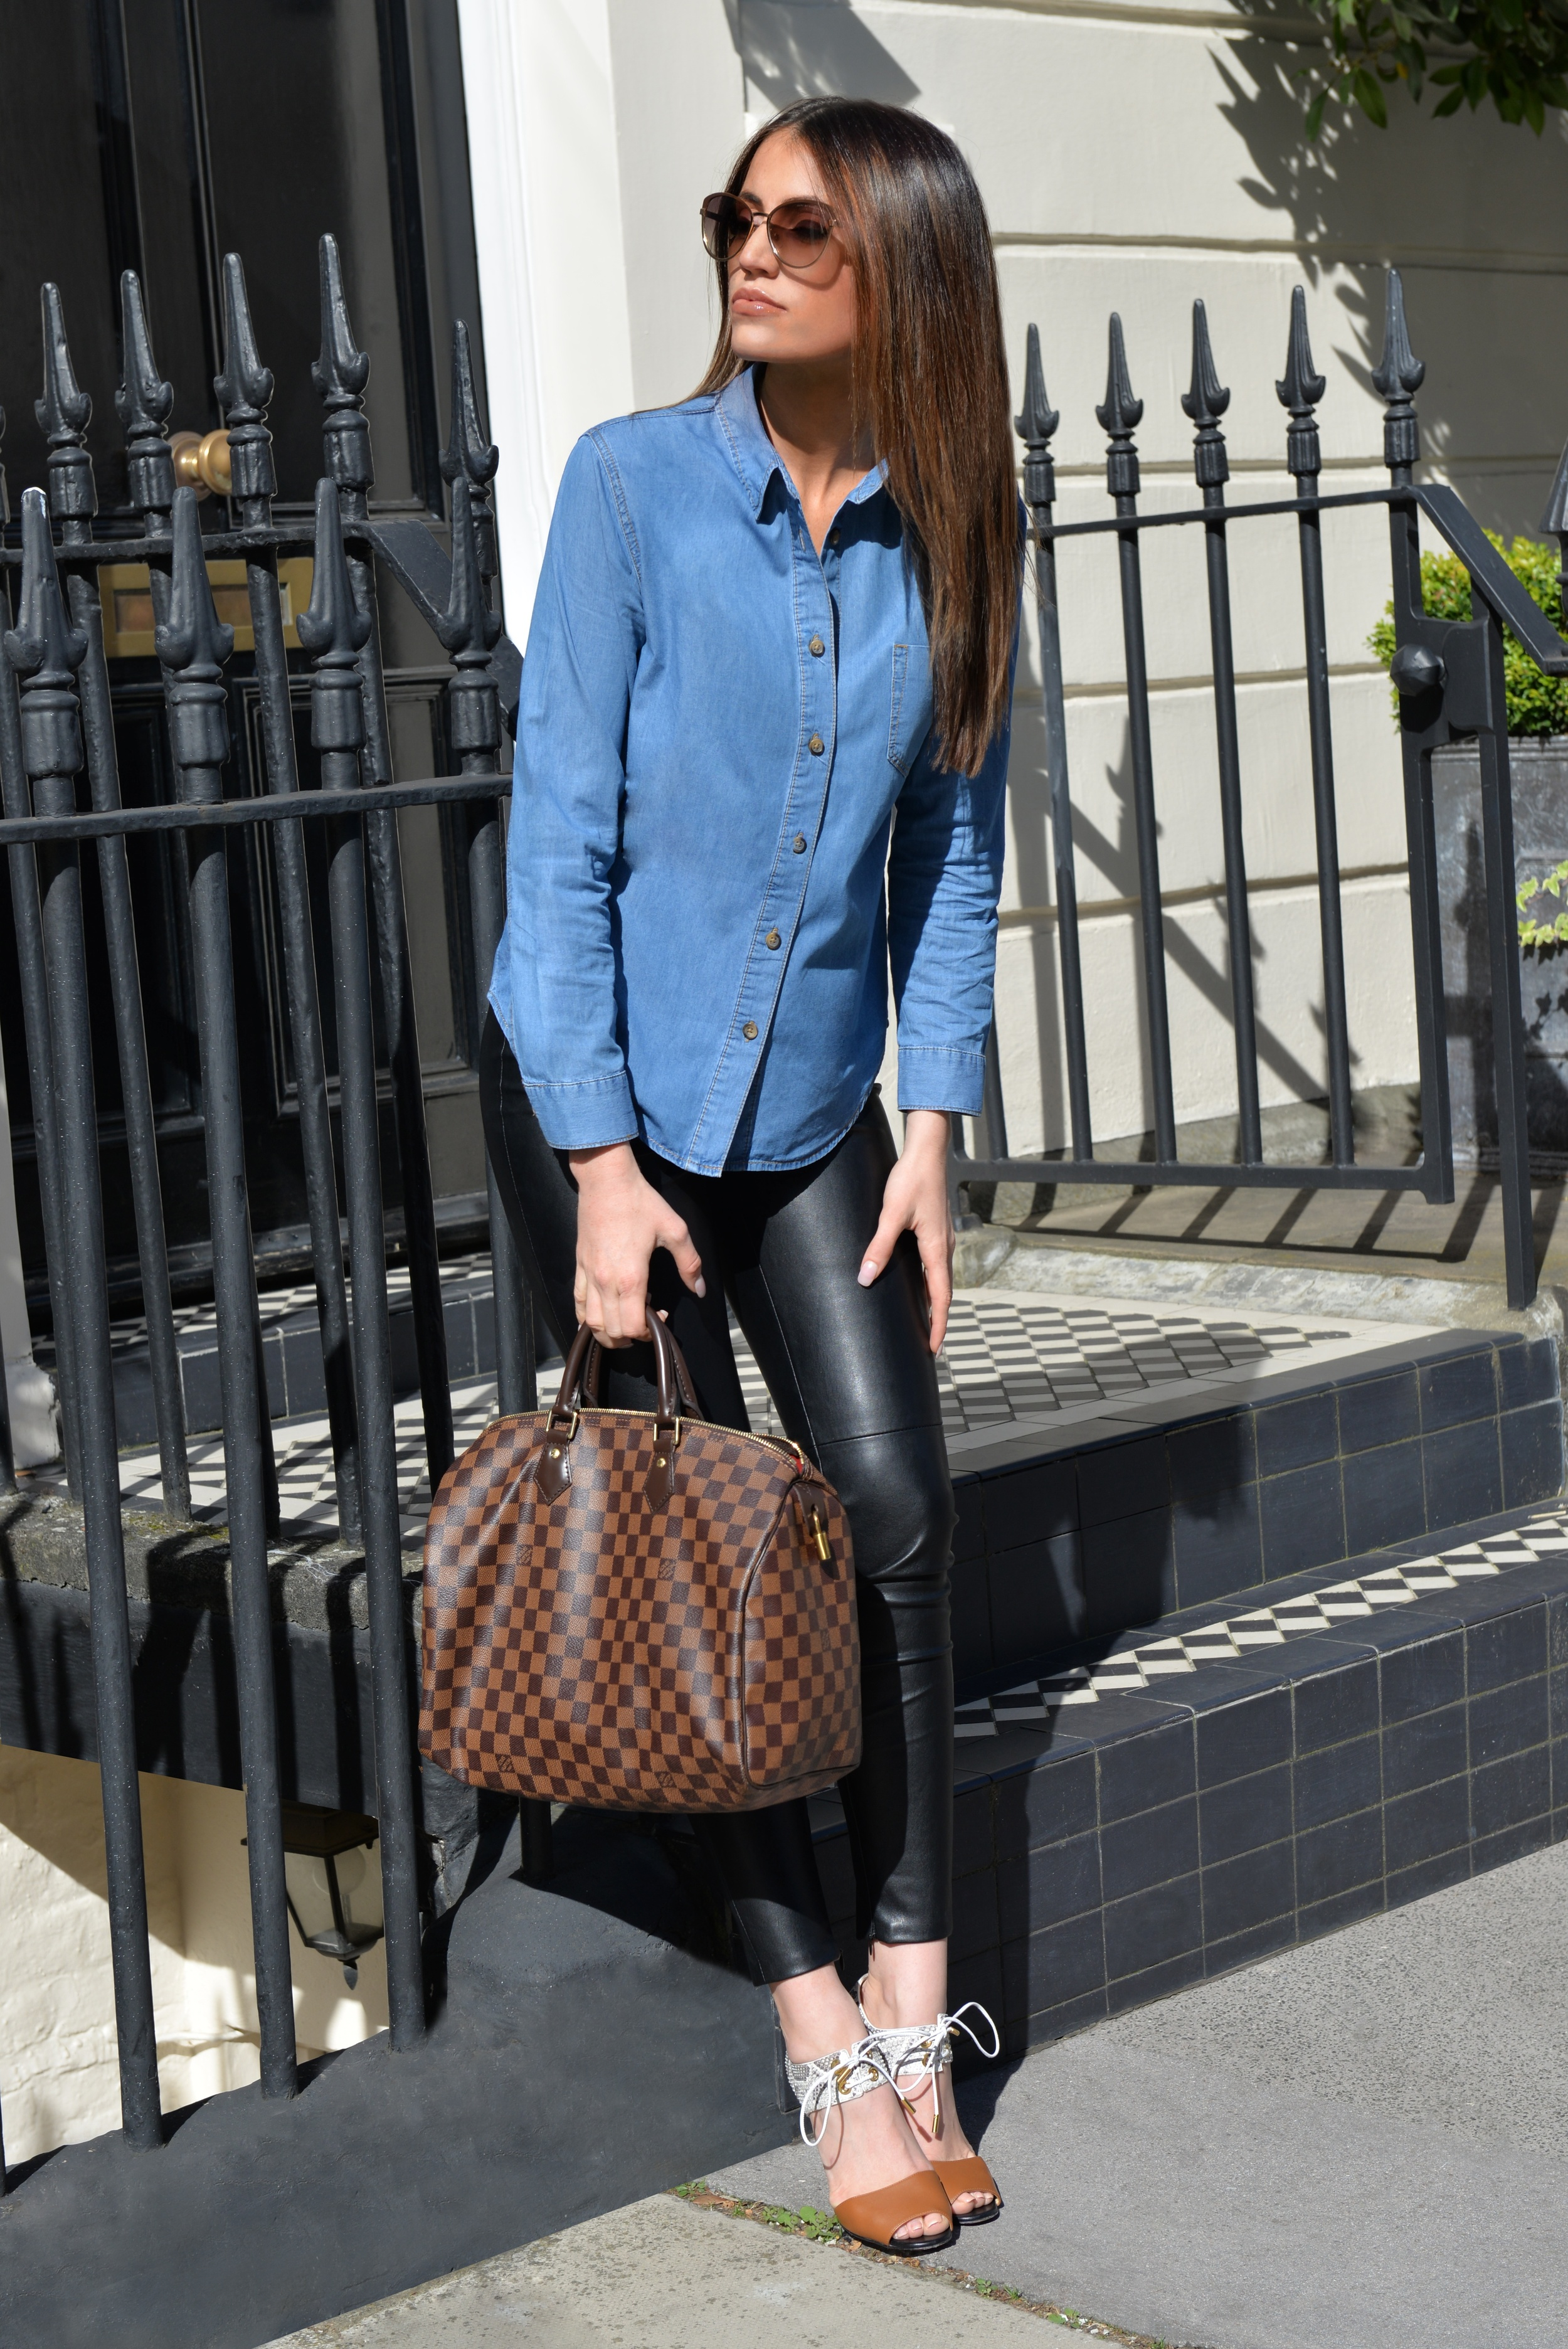 HOT WAYS TO STYLE YOUR DEMIN SHIRT POST